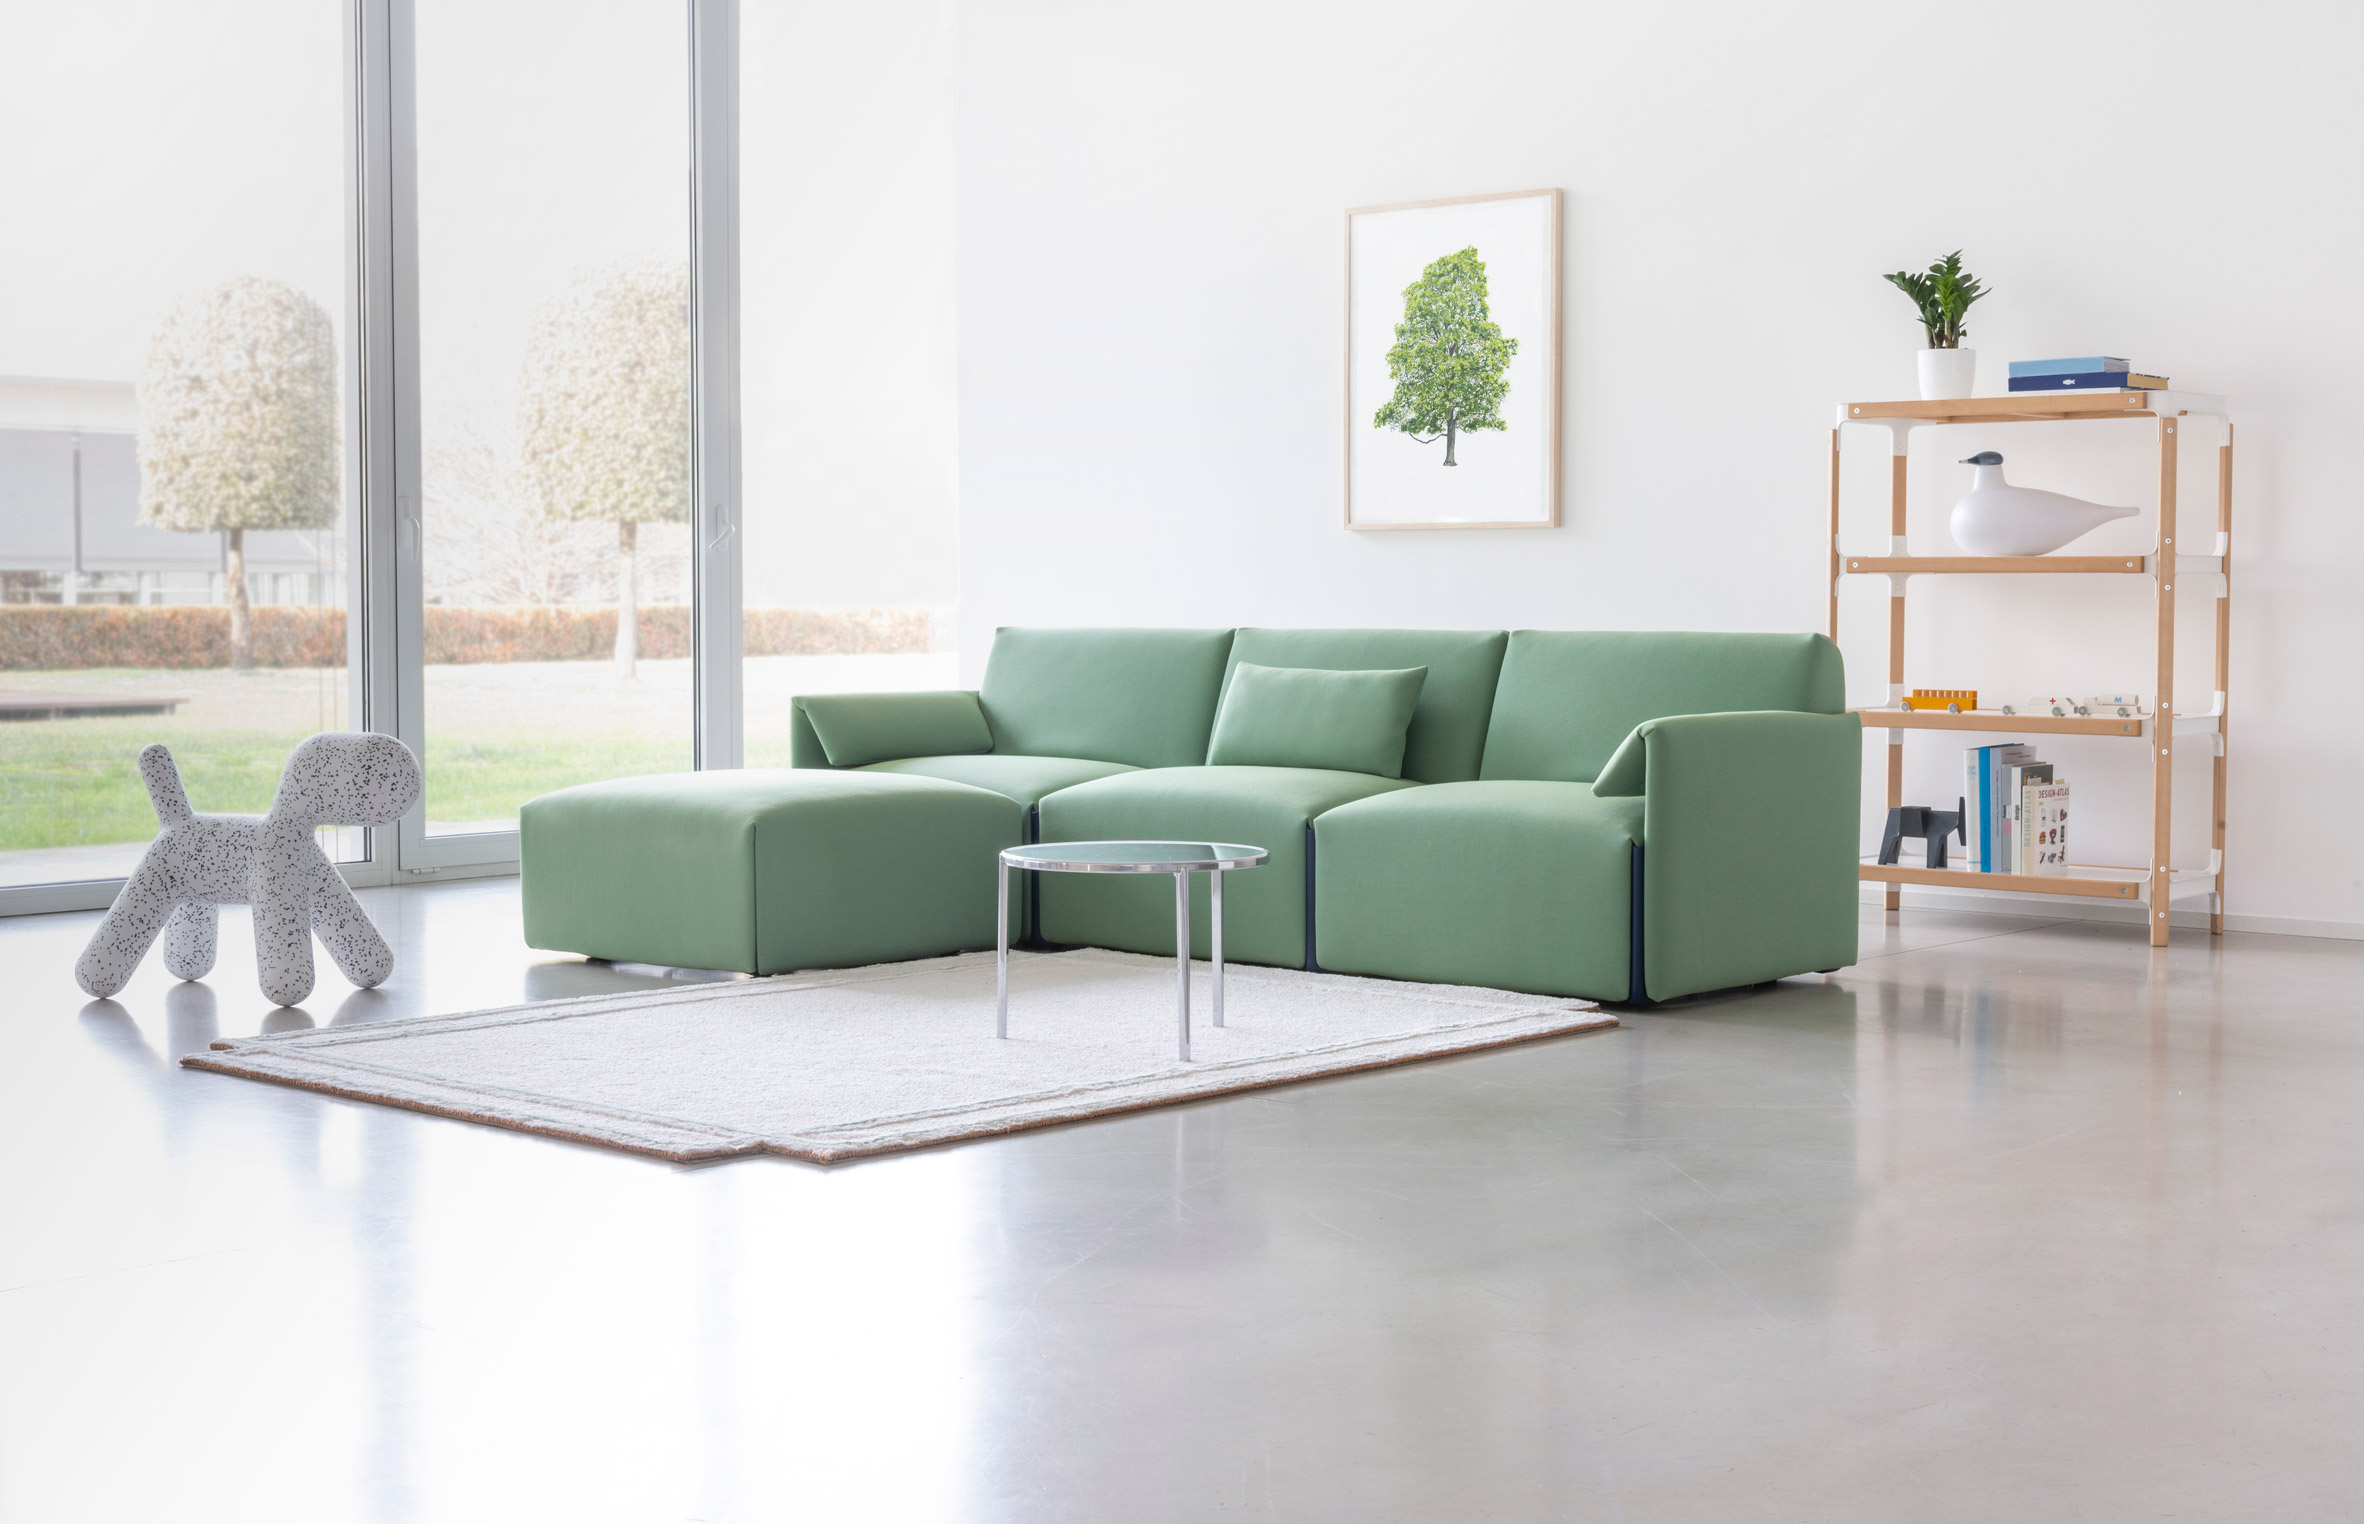 Green Costume sofa by Stefan Diez for Magis in a living room